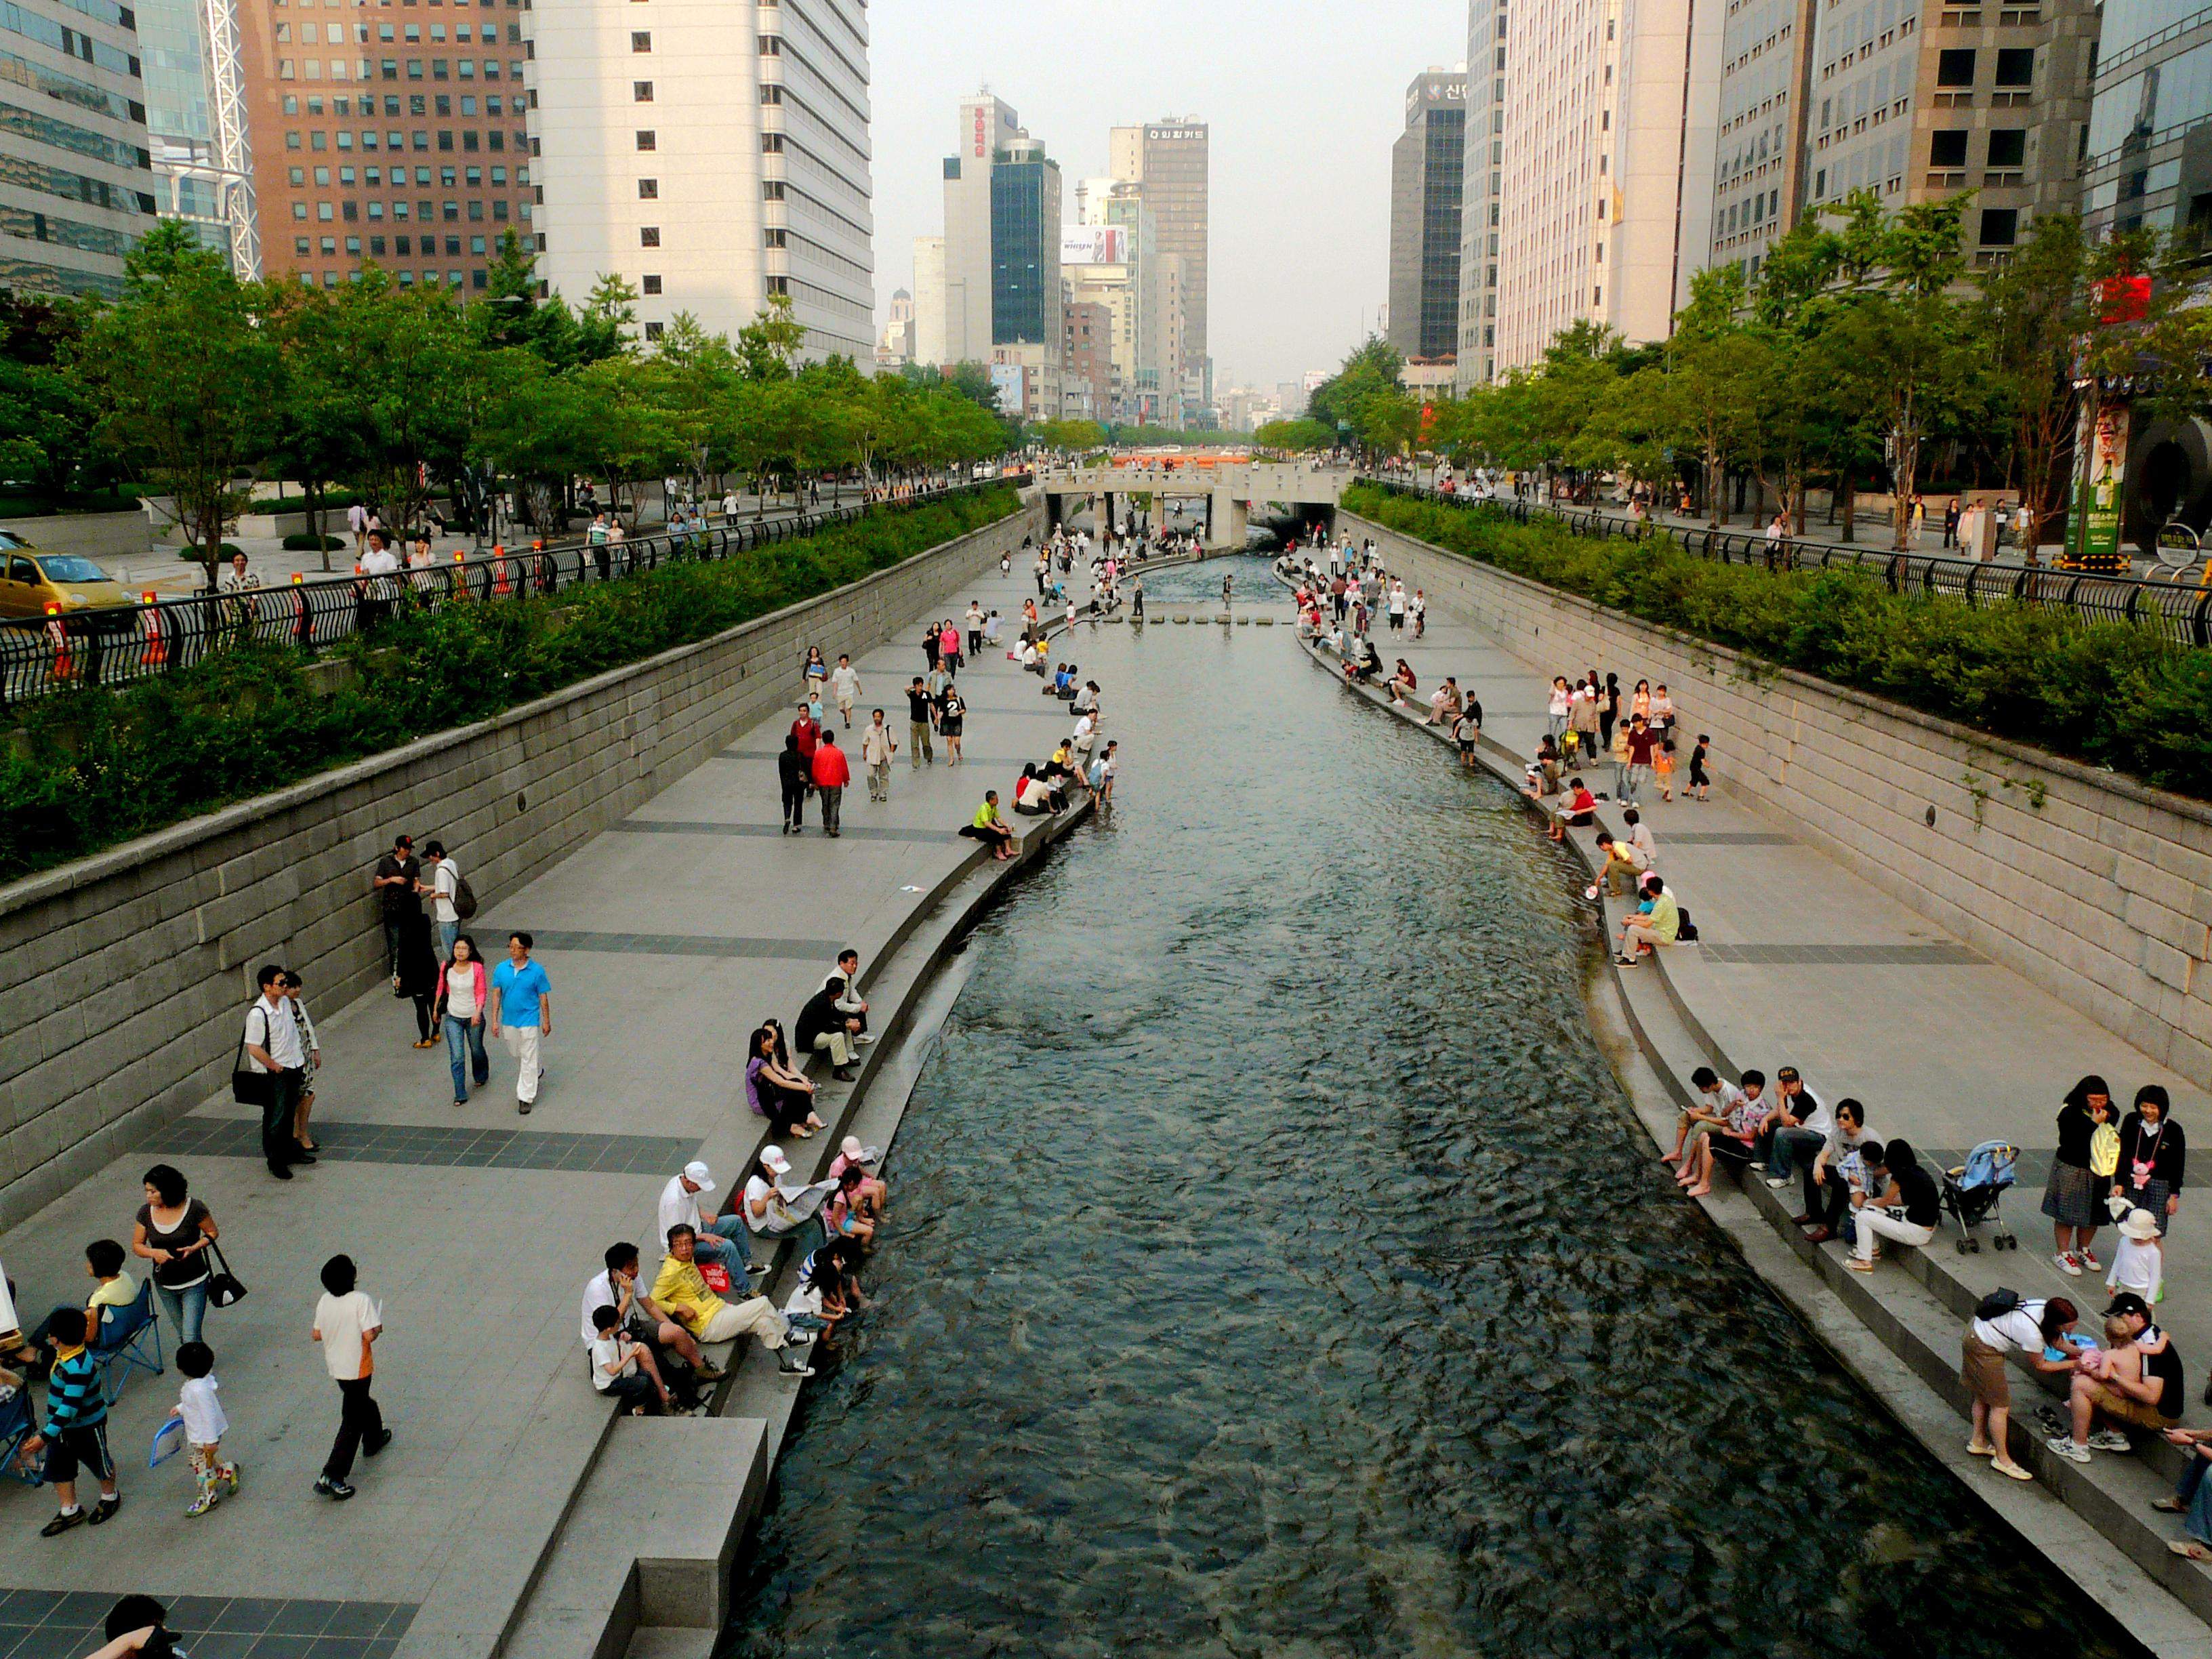 Cheonggye Stream is a public space in downtown Seoul and an urban renewal project. (Photo by Kimmo Räisänen)